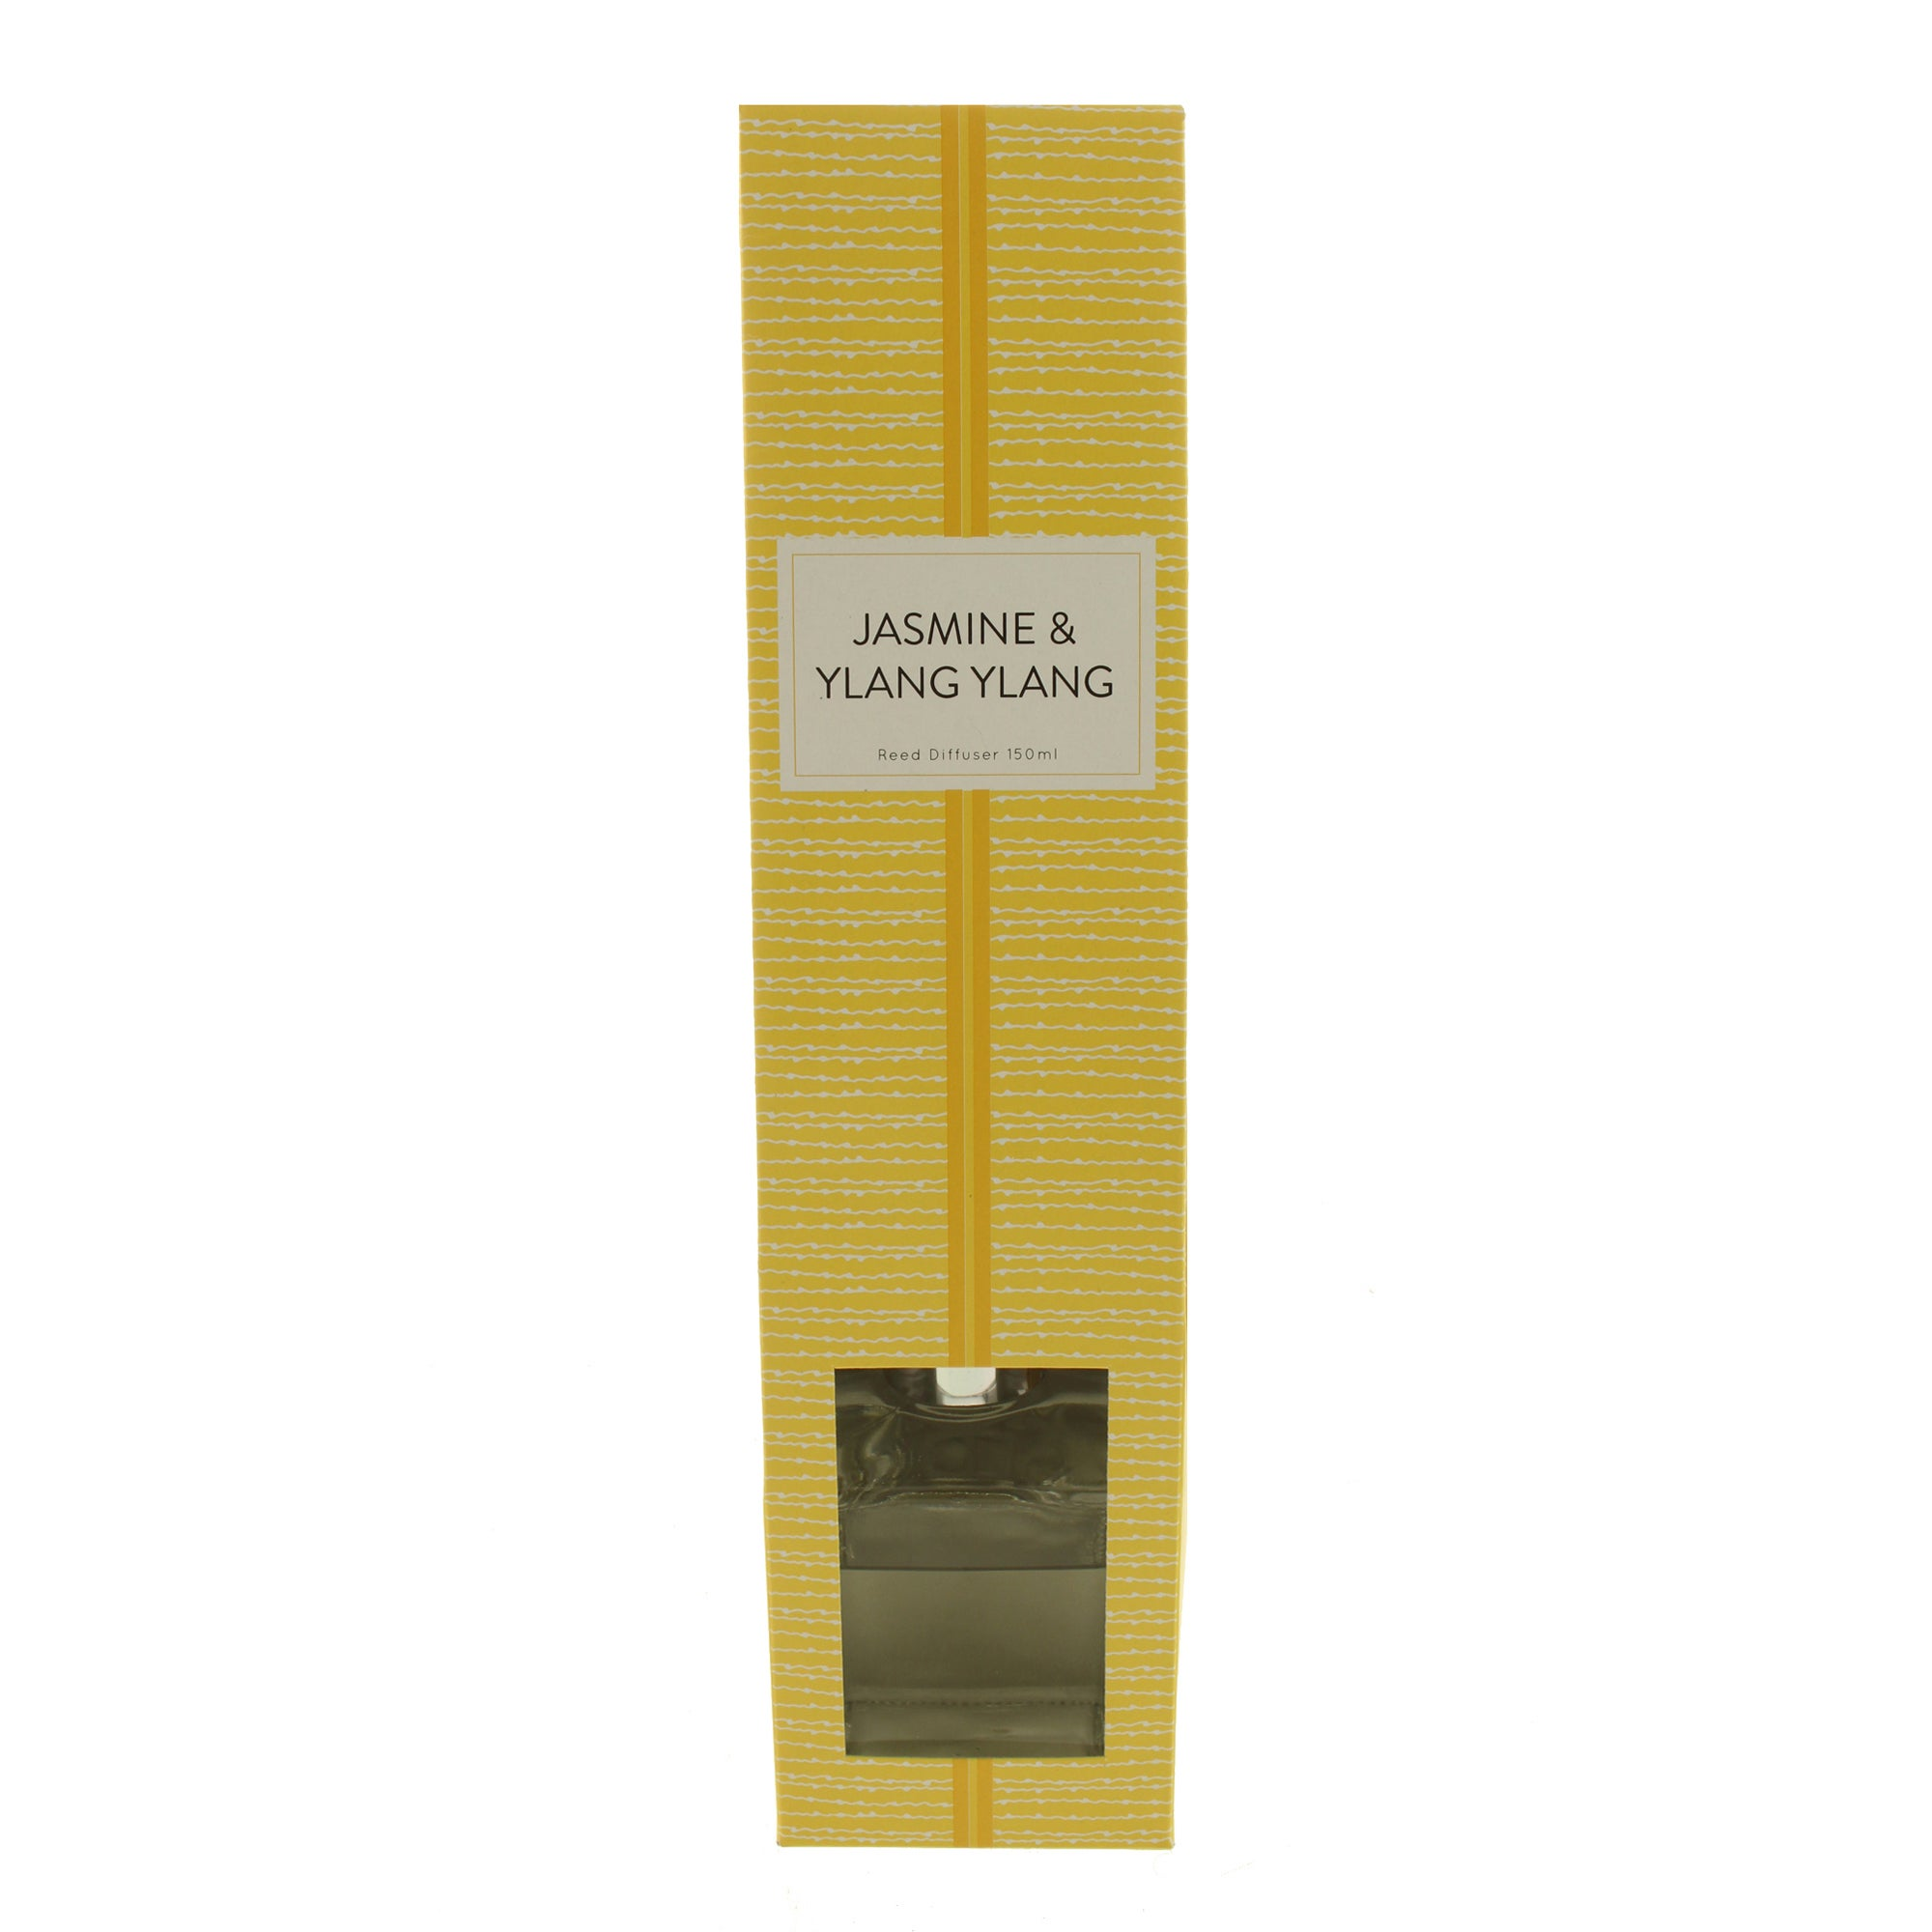 Home Fragrance Jasmine and Ylang Ylang 150ml Reed Diffuser